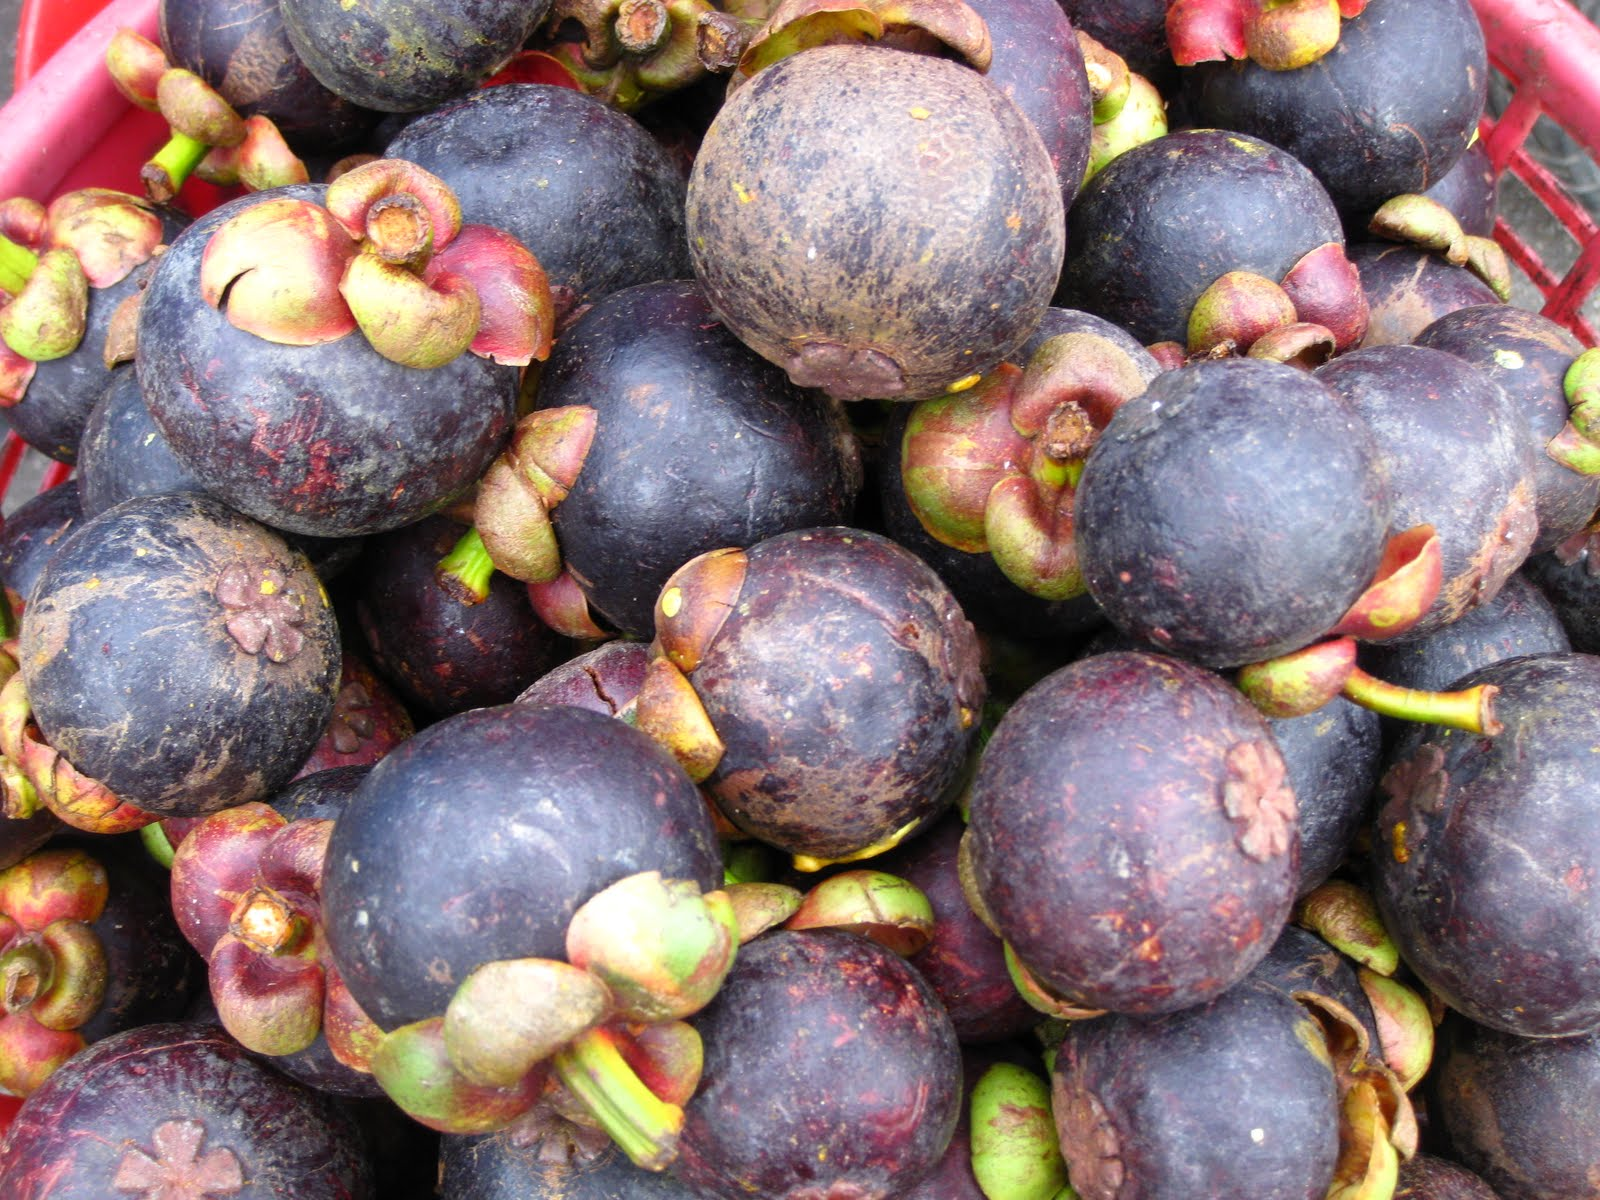 Trunks Up!: Thailand's Exotic Fruits